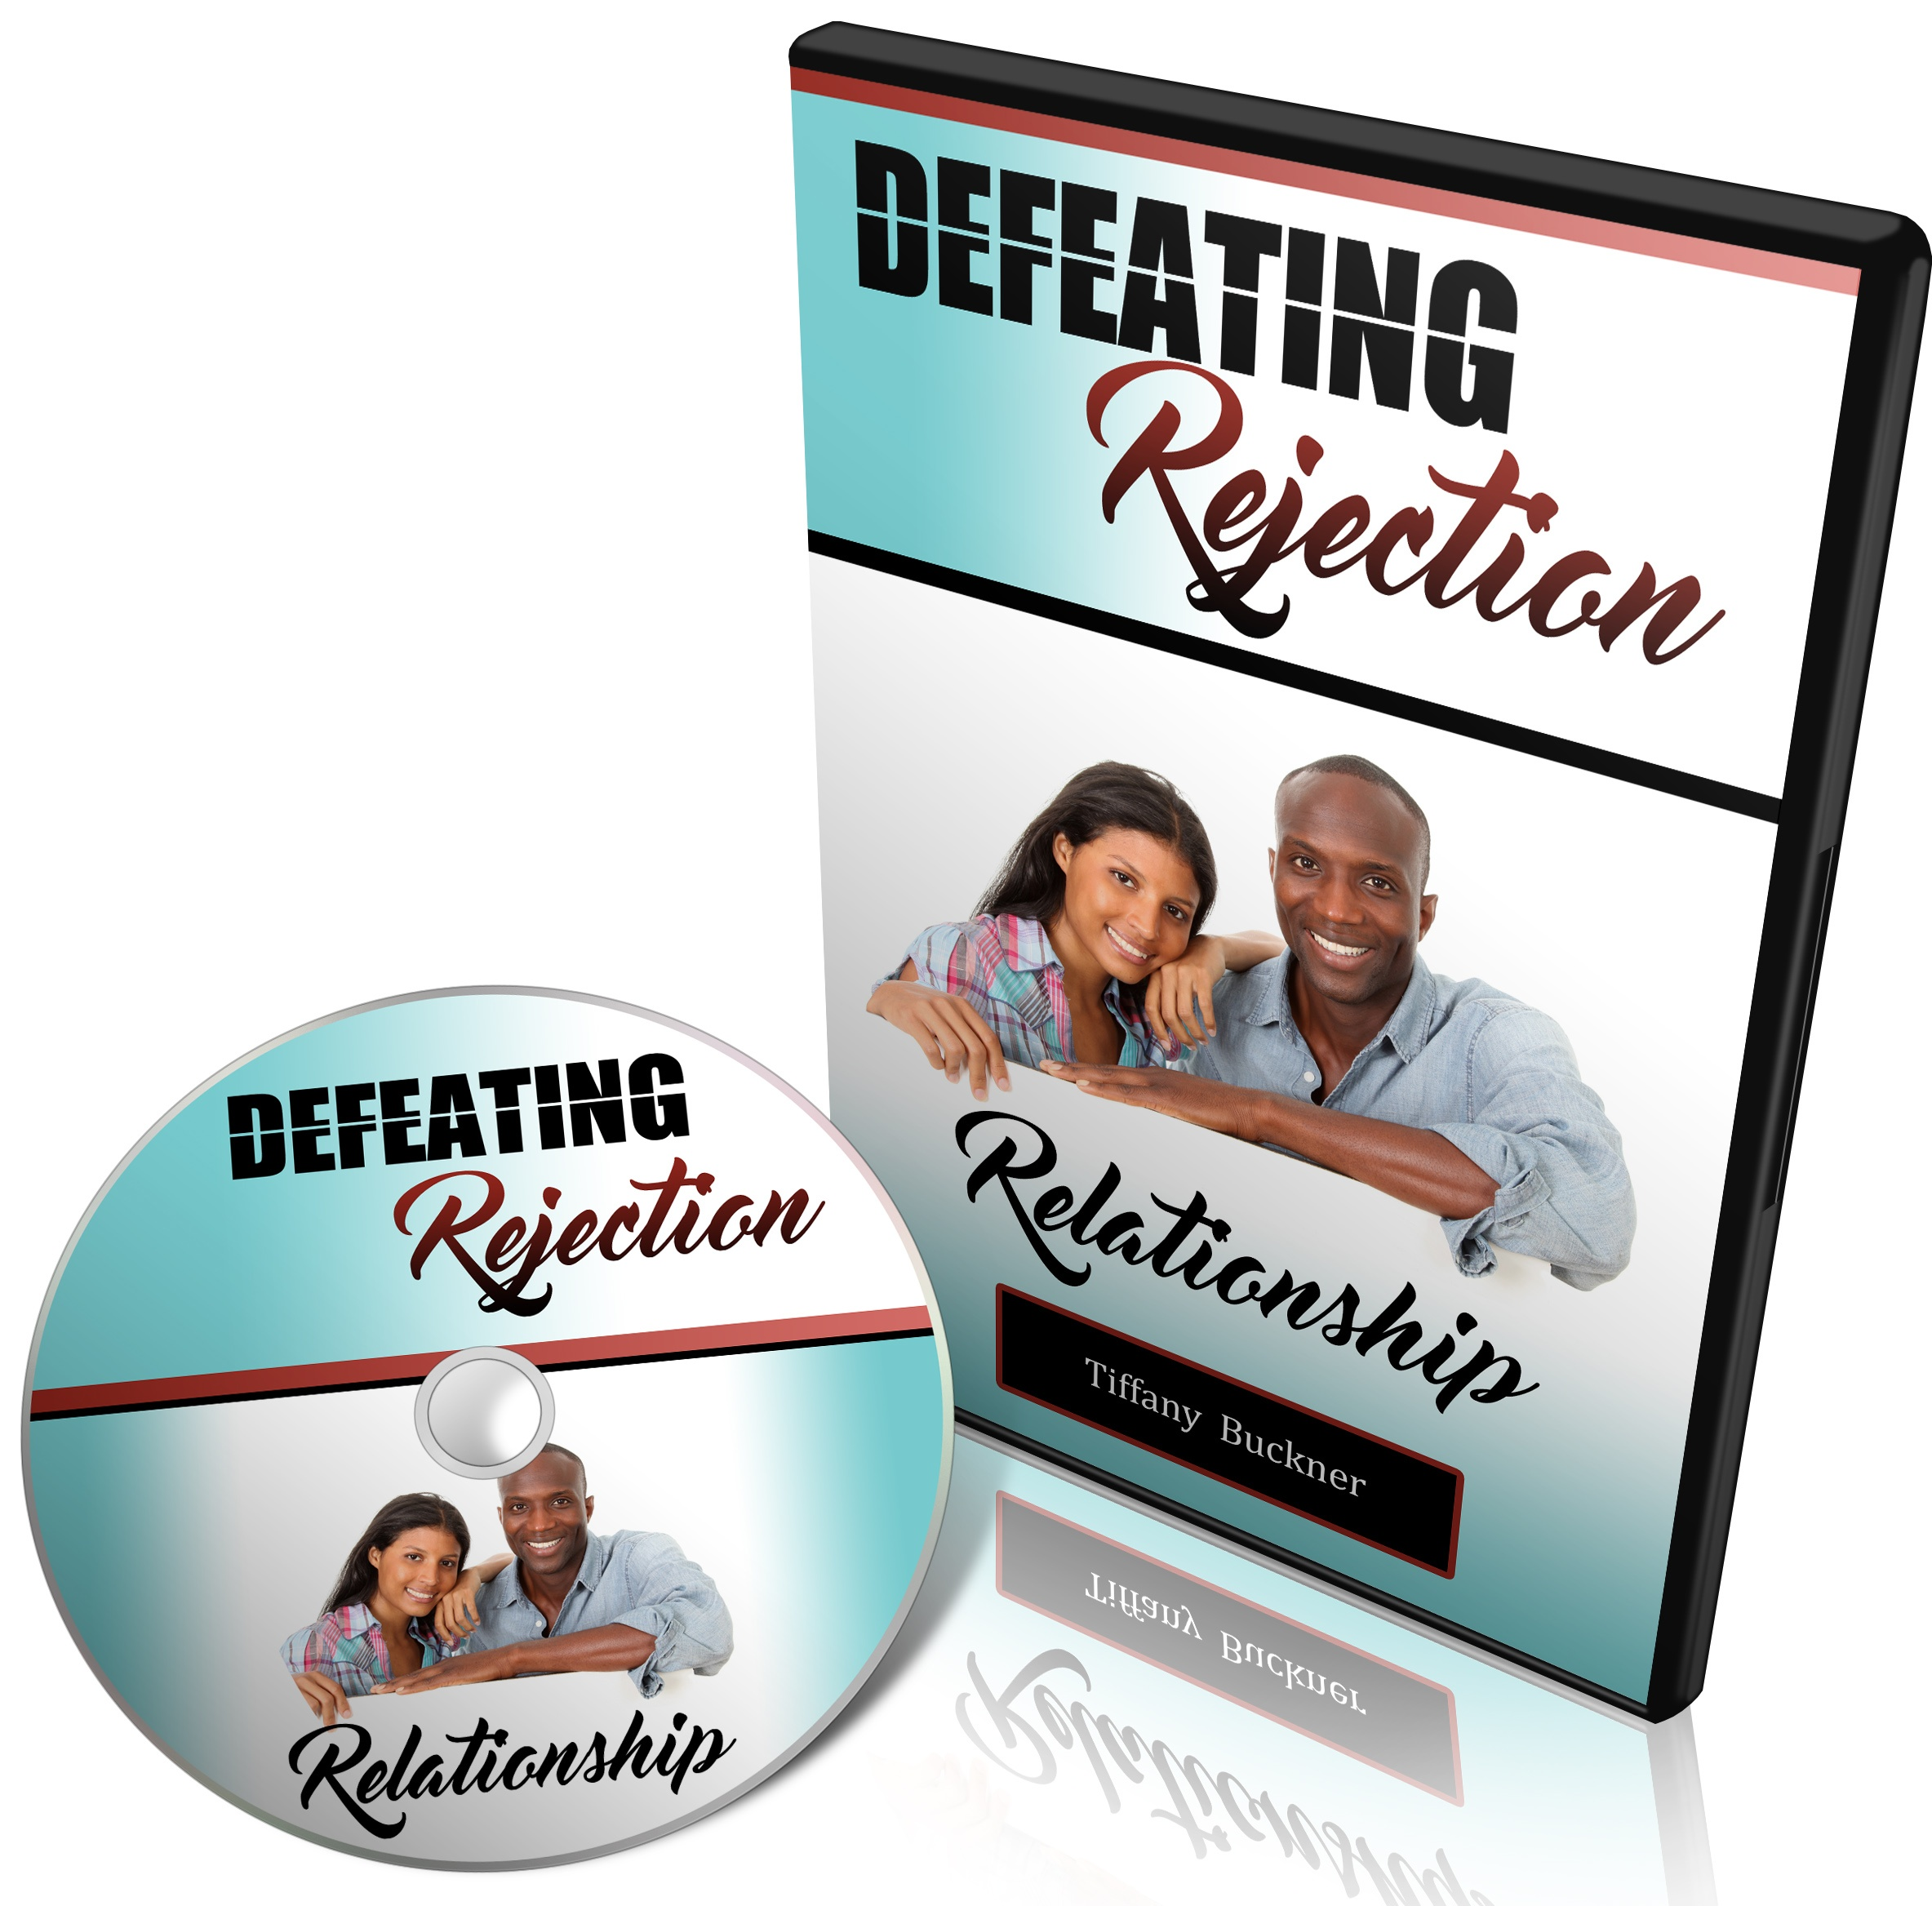 Defeating Rejection (Part 4): Relationship